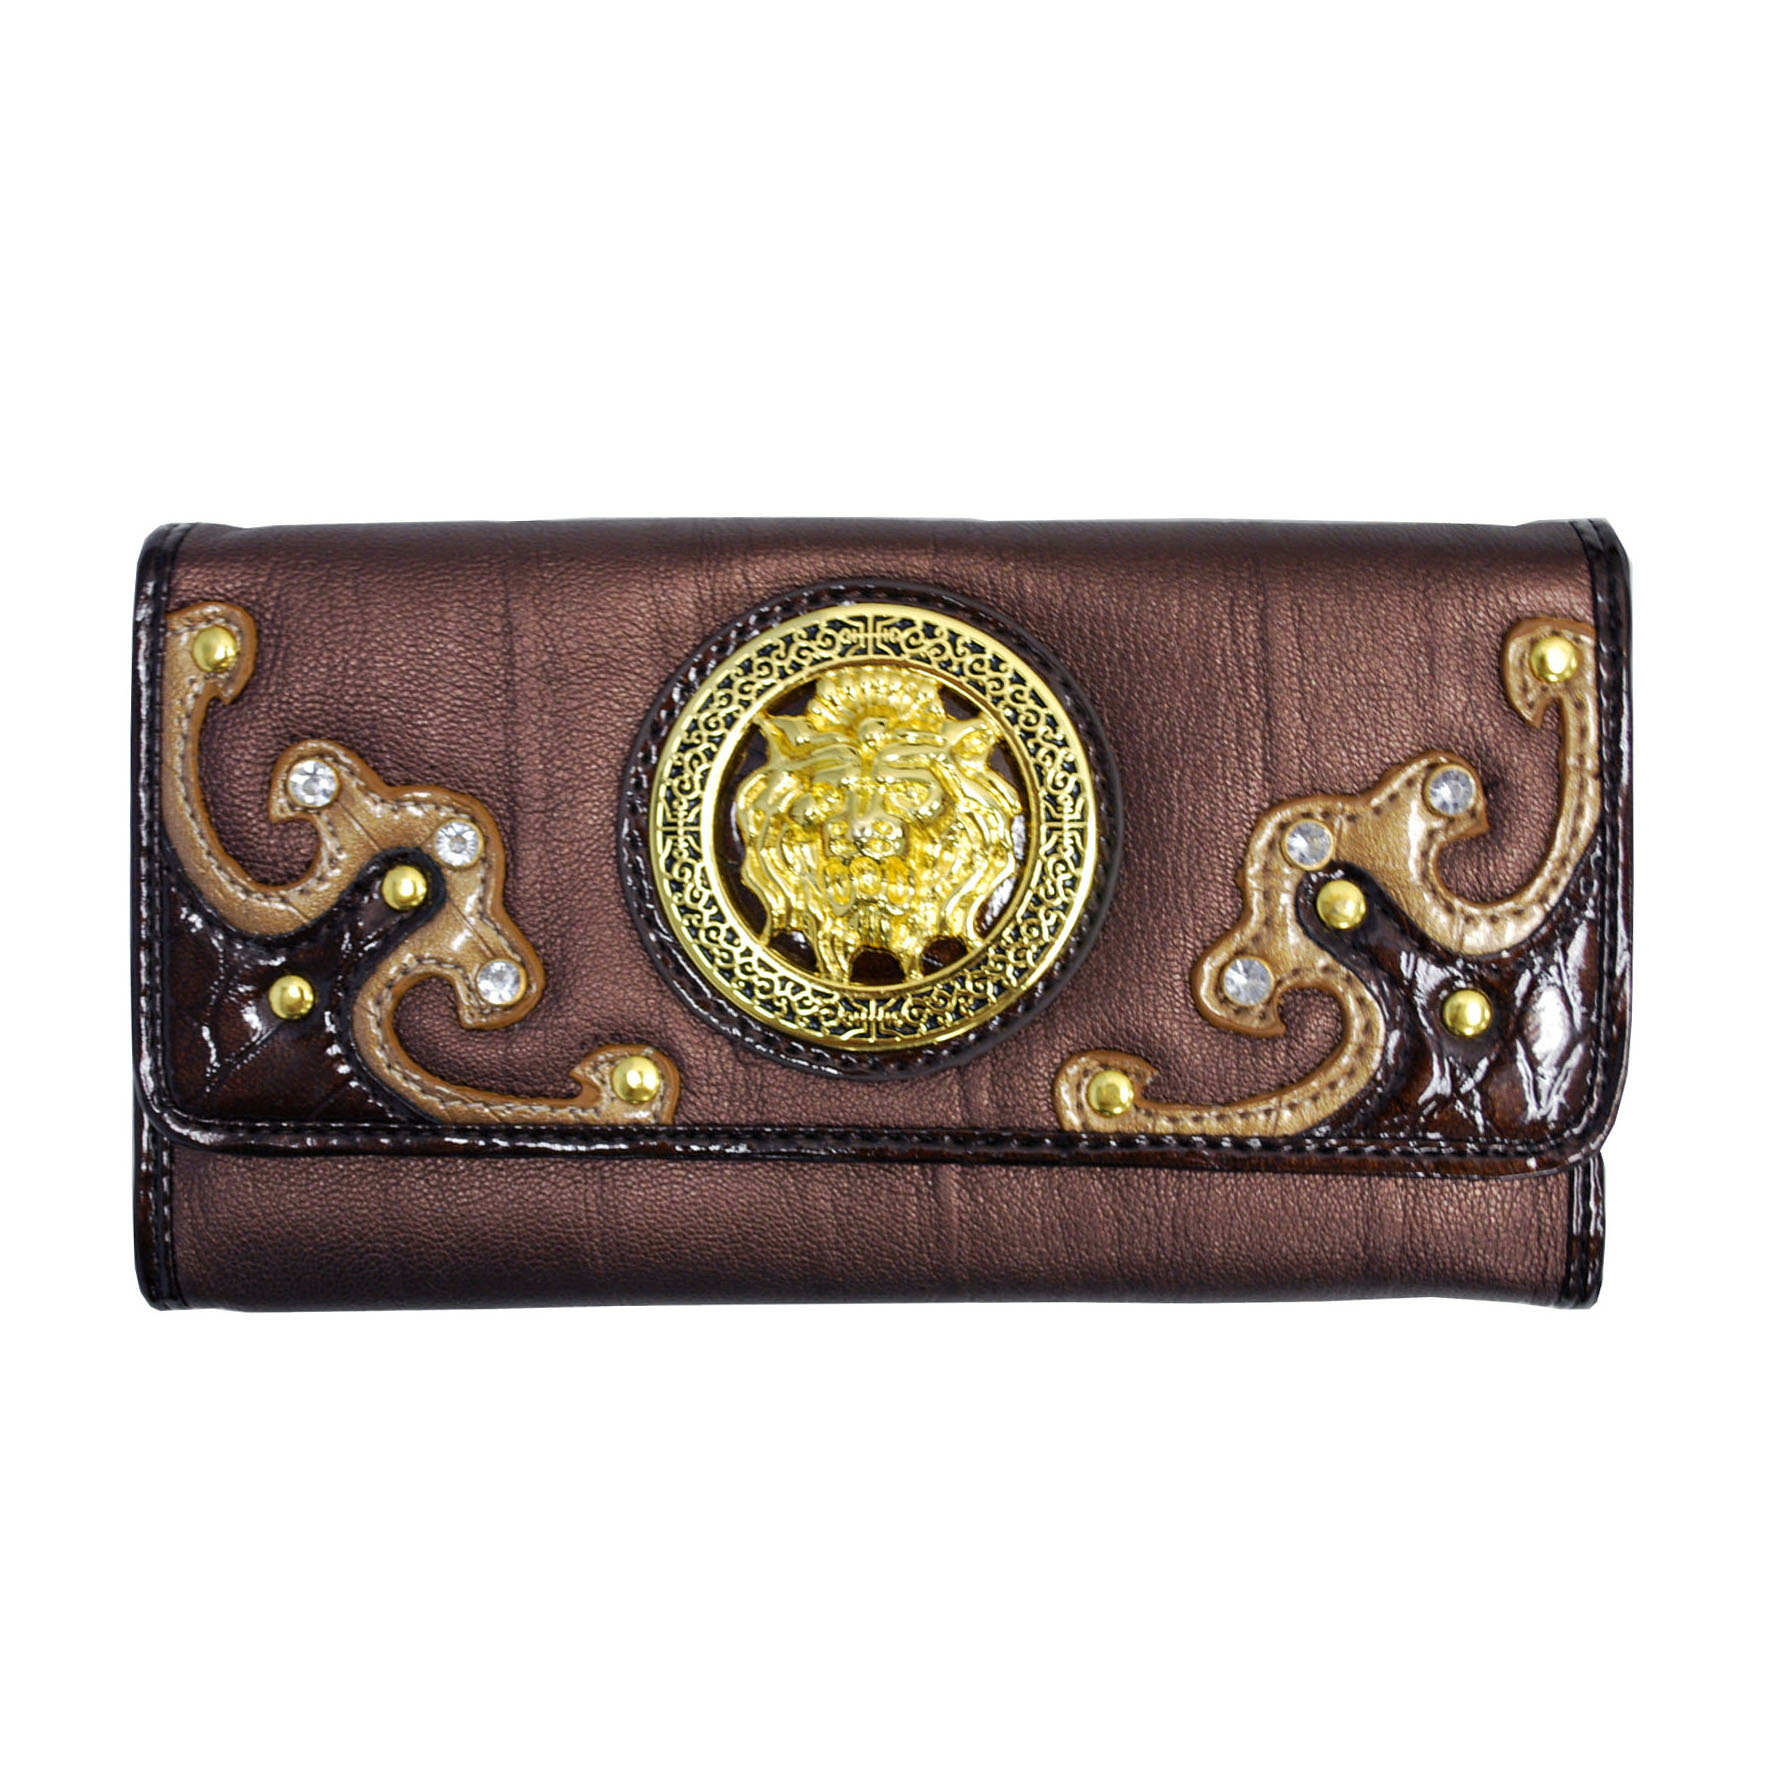 Meada Designer Inspired Lion Emblem Accented Checkbook Wallet-Bronze